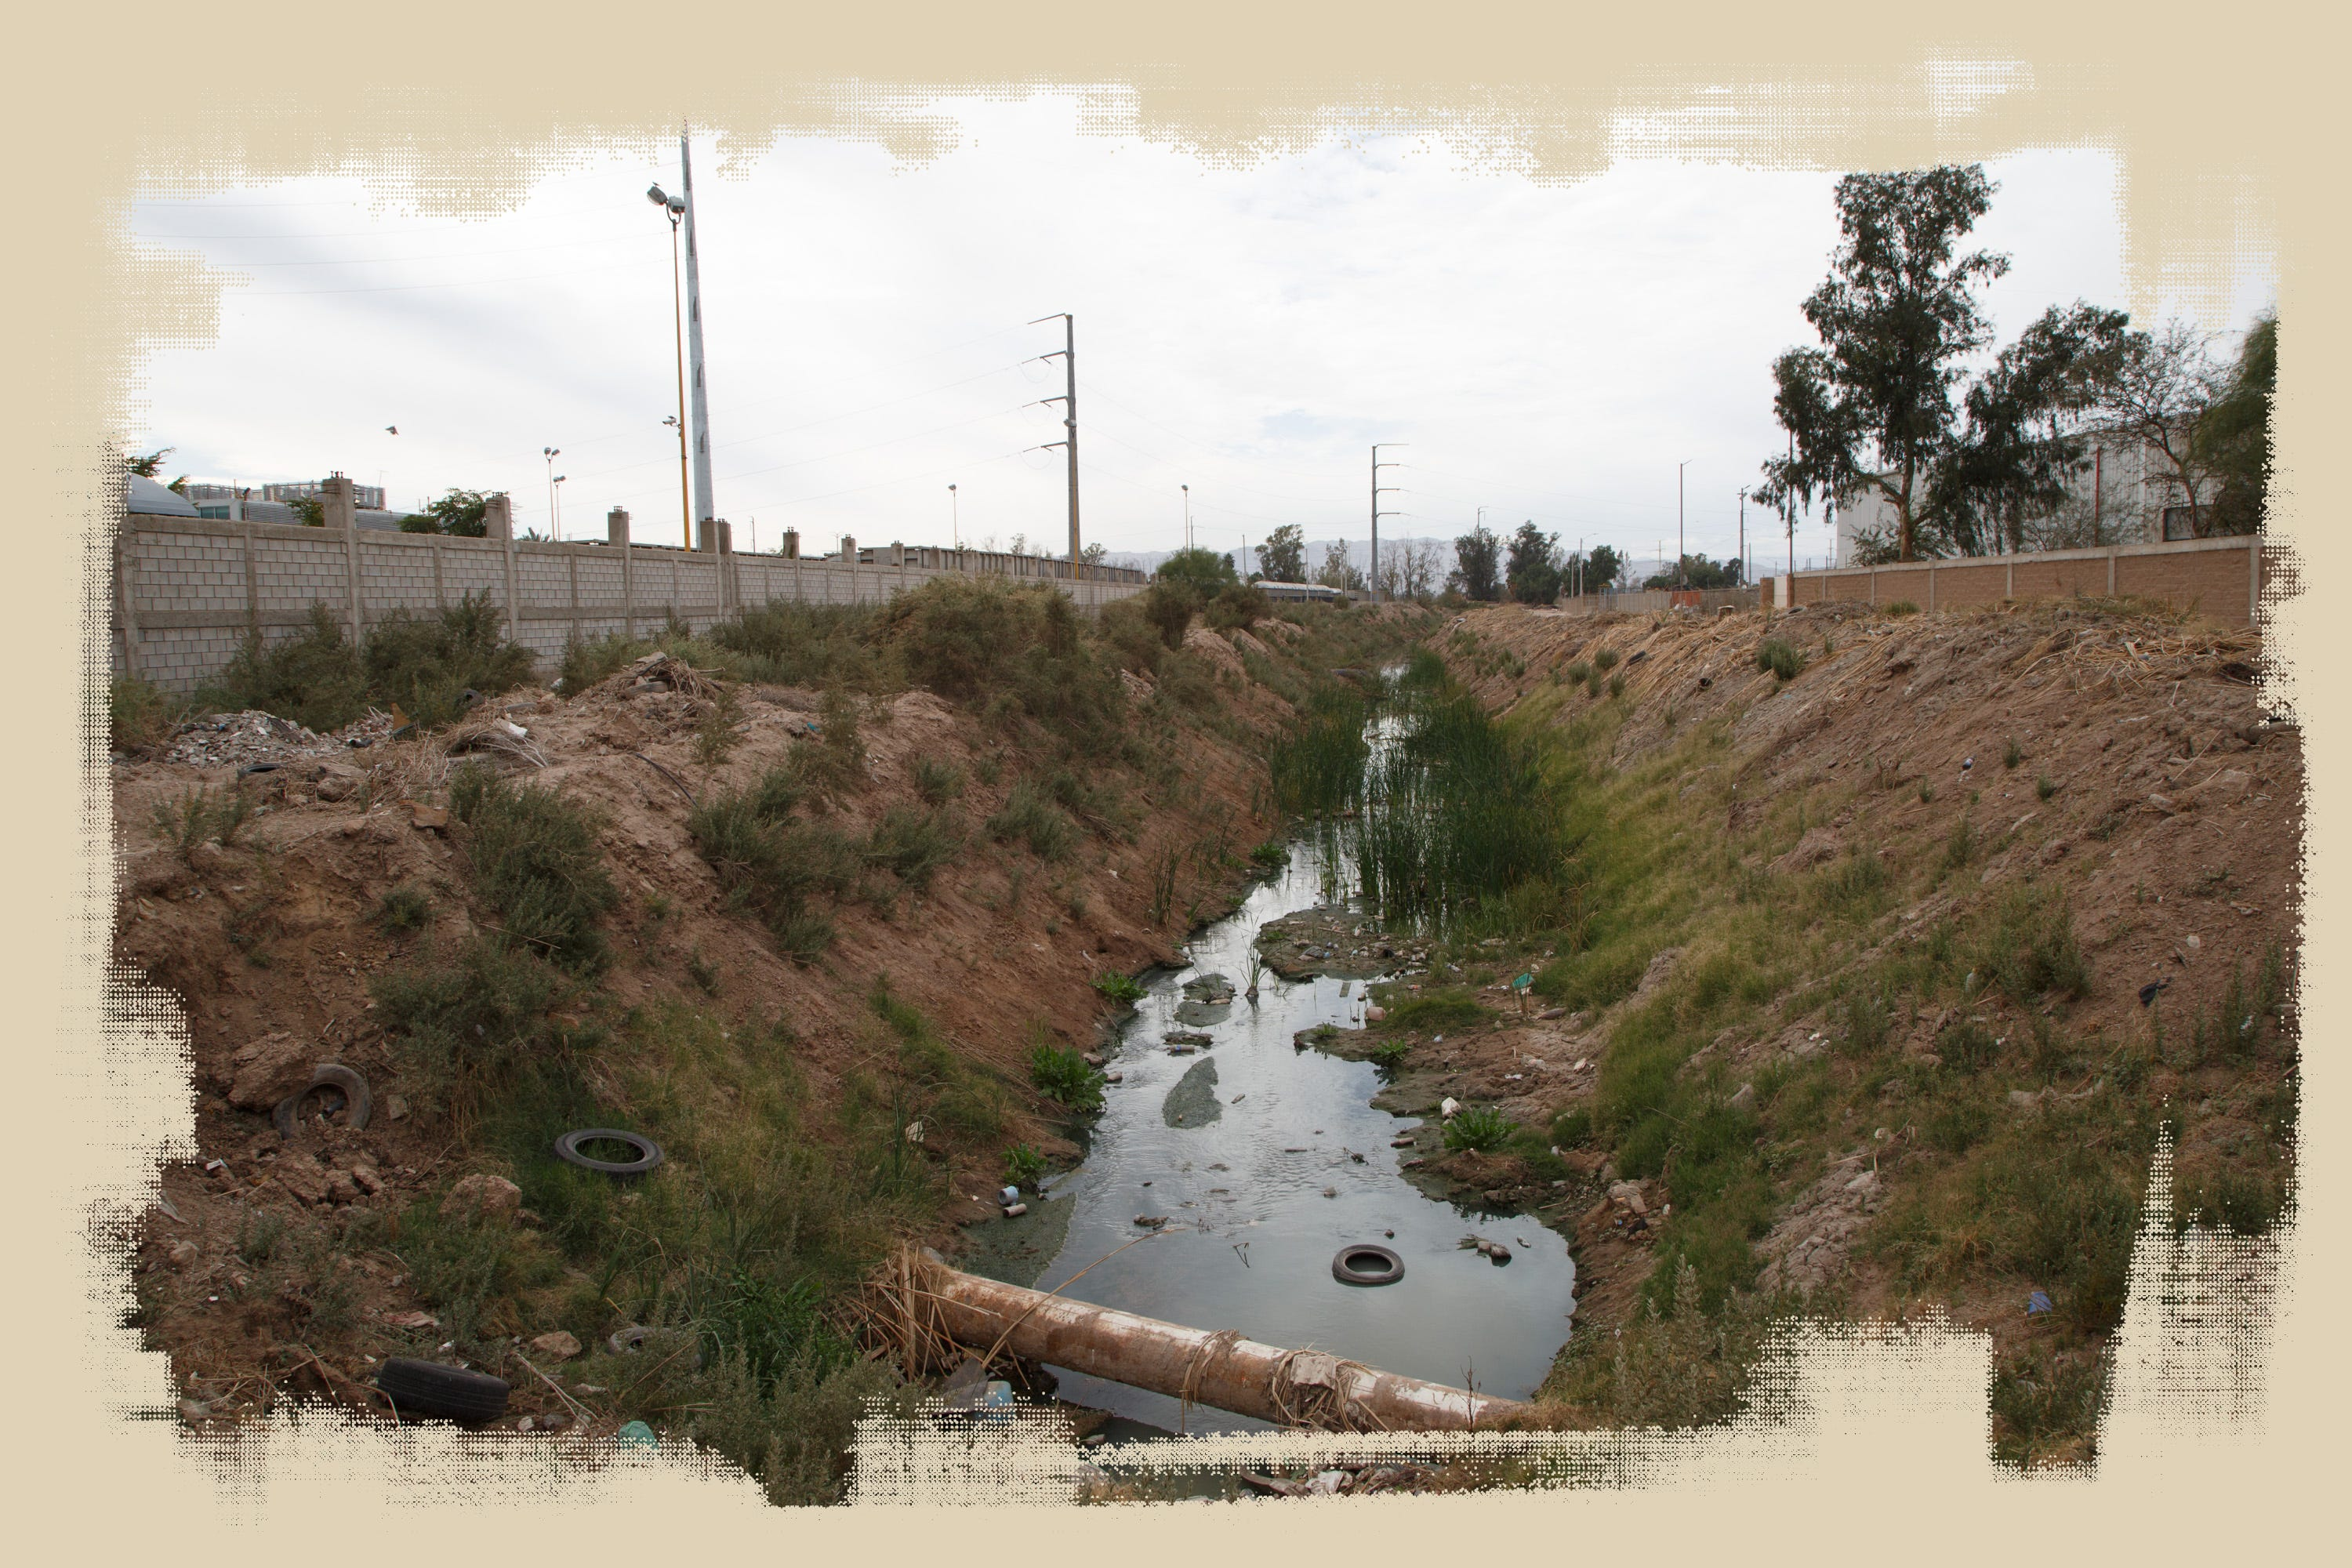 A ditch runs between the Vitro glass factory and a scrapyard in Mexicali. The city's ditches drain into the New River.